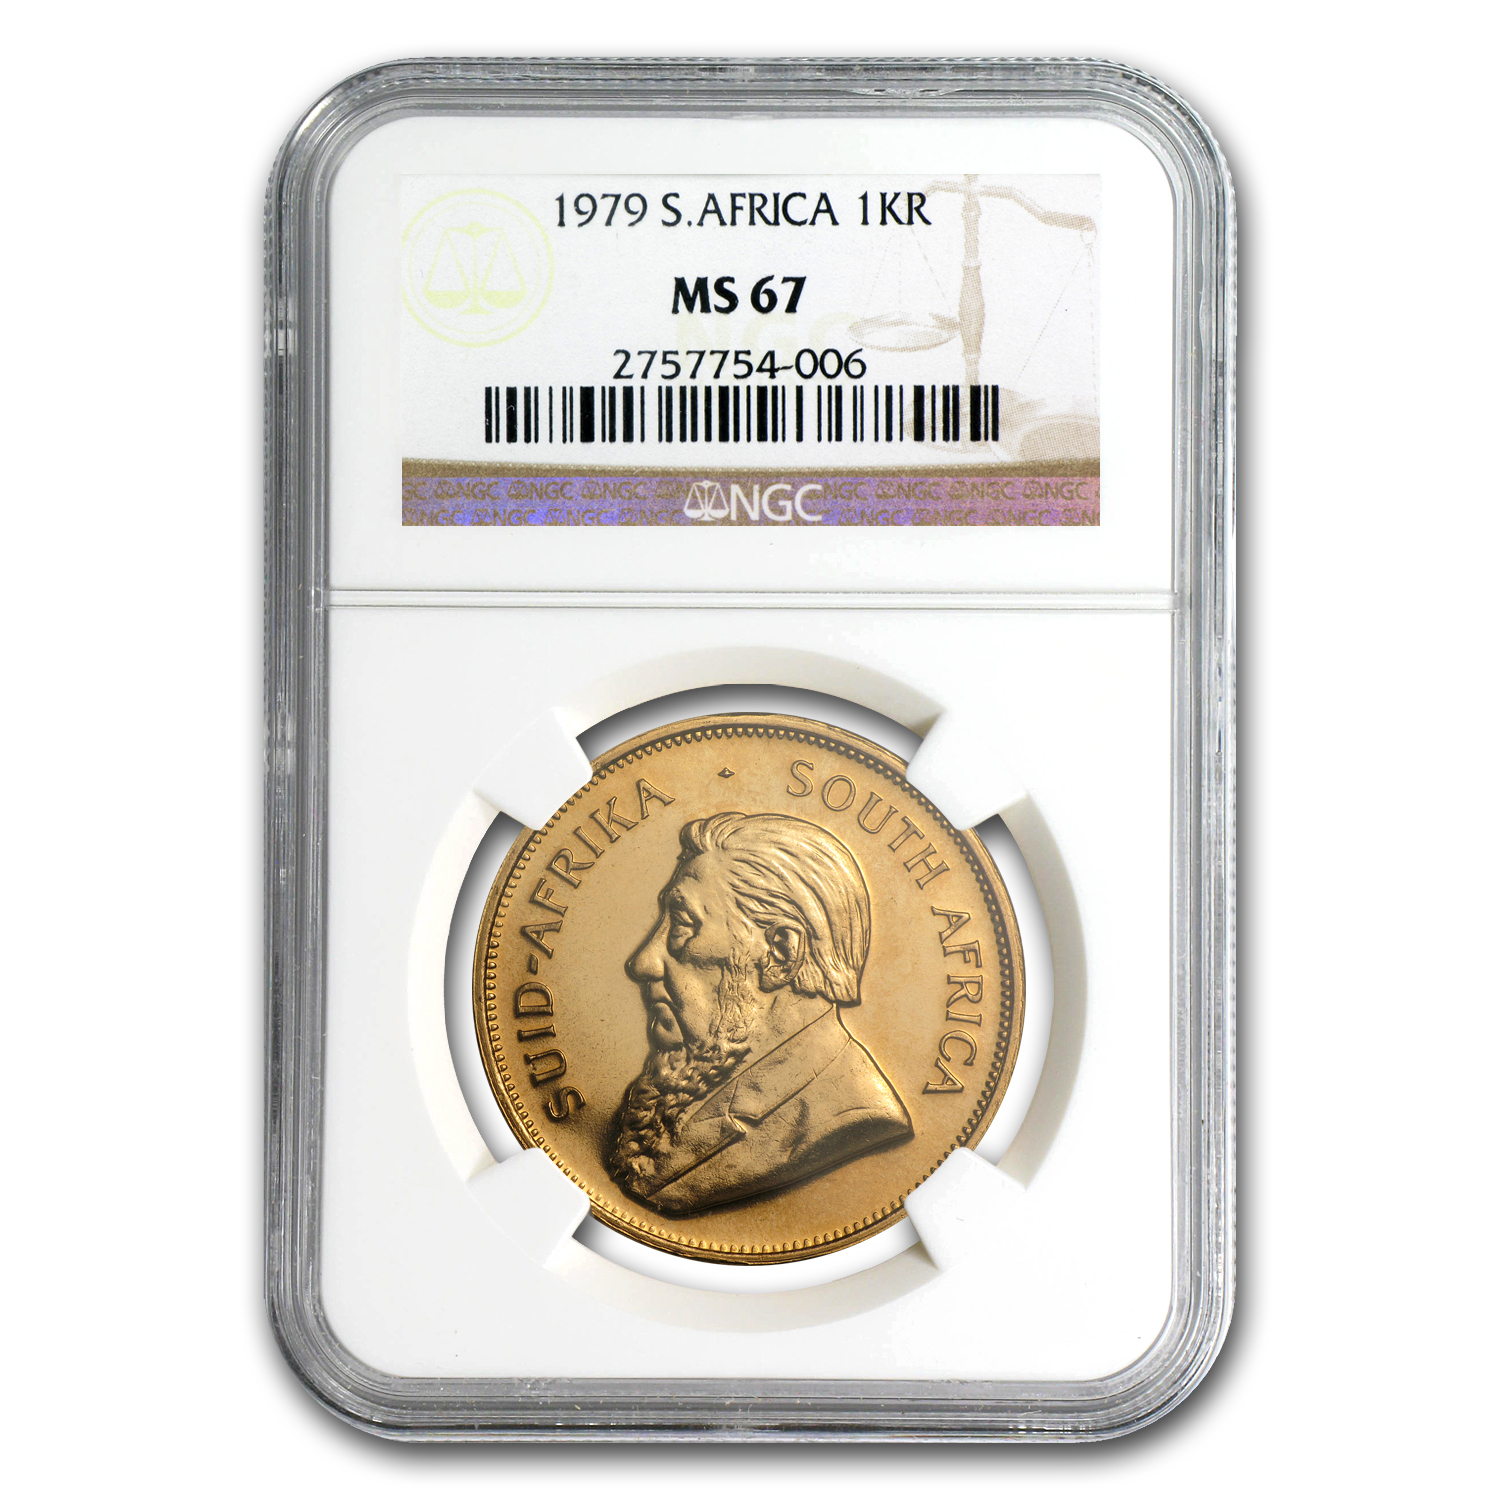 1979 1 oz Gold South African Krugerrand MS-67 NGC